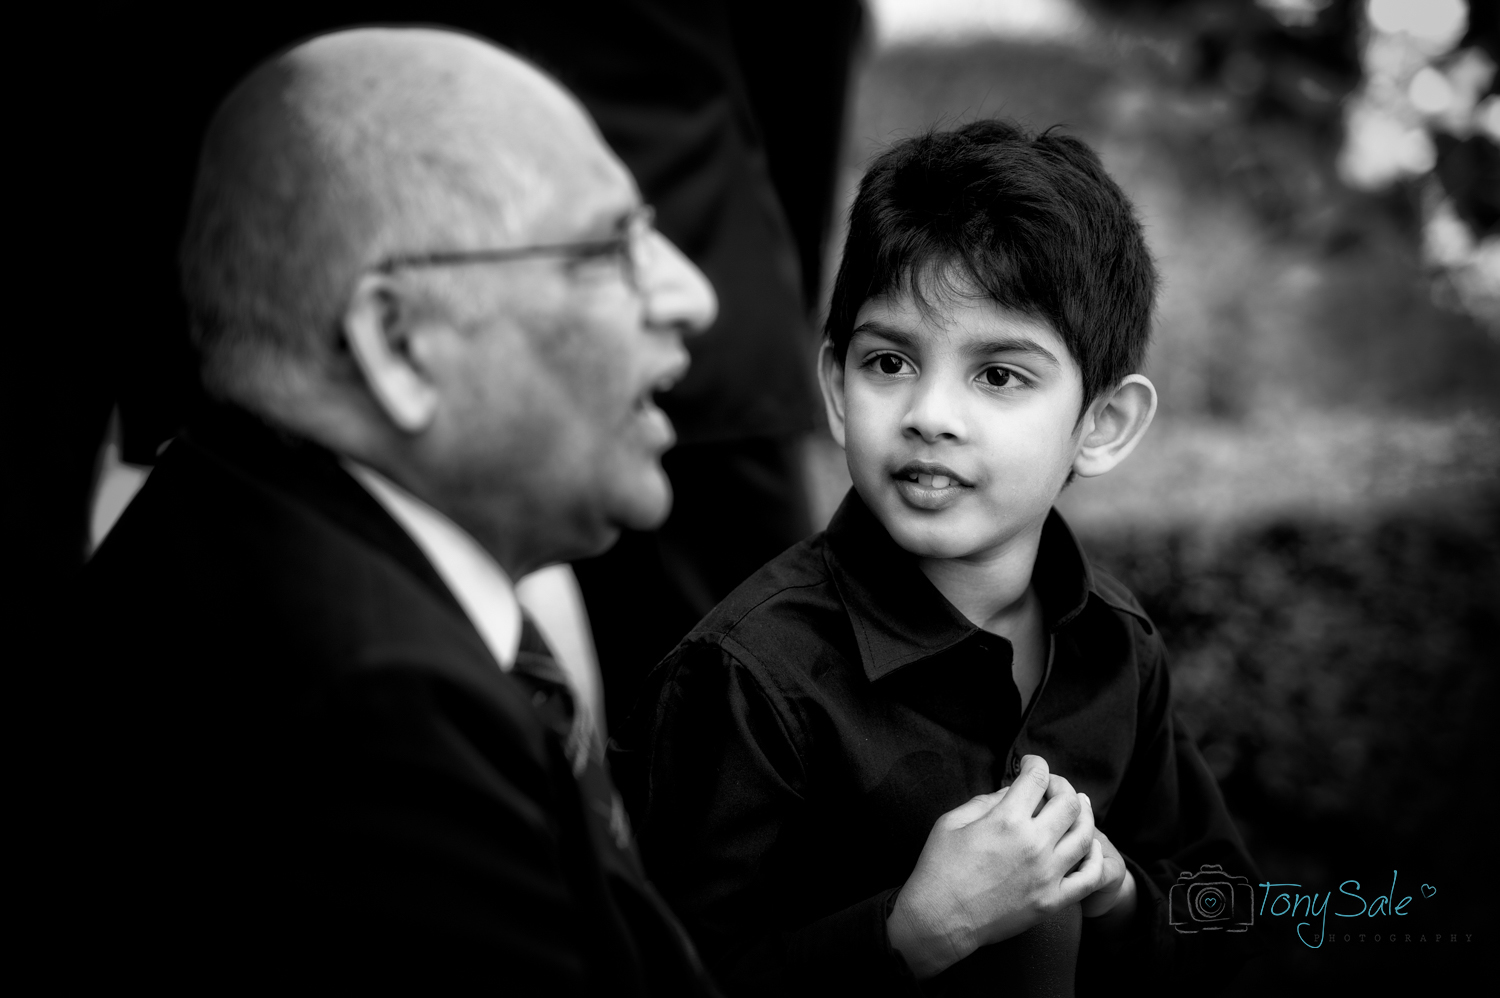 interaction between a boy and his grandfather